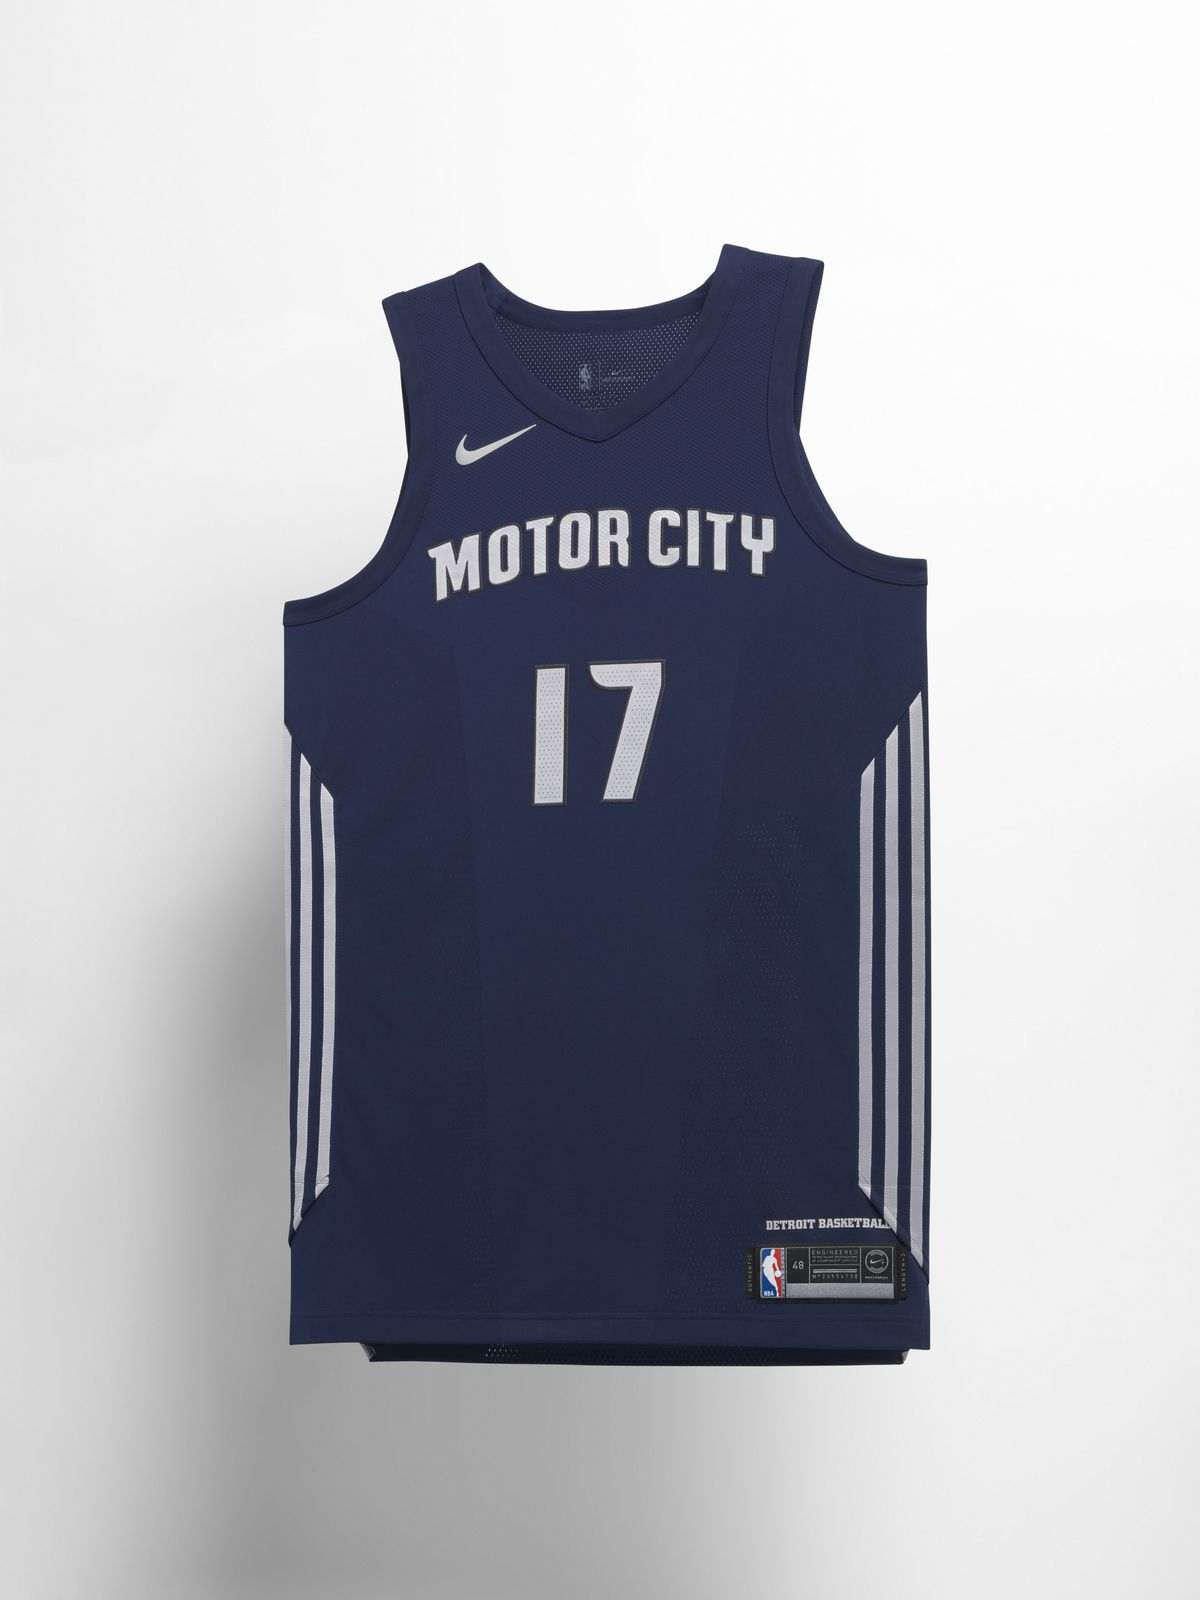 outlet store b4c9c 5c48c Detroit Pistons unveil new Motor City jerseys as part of ...